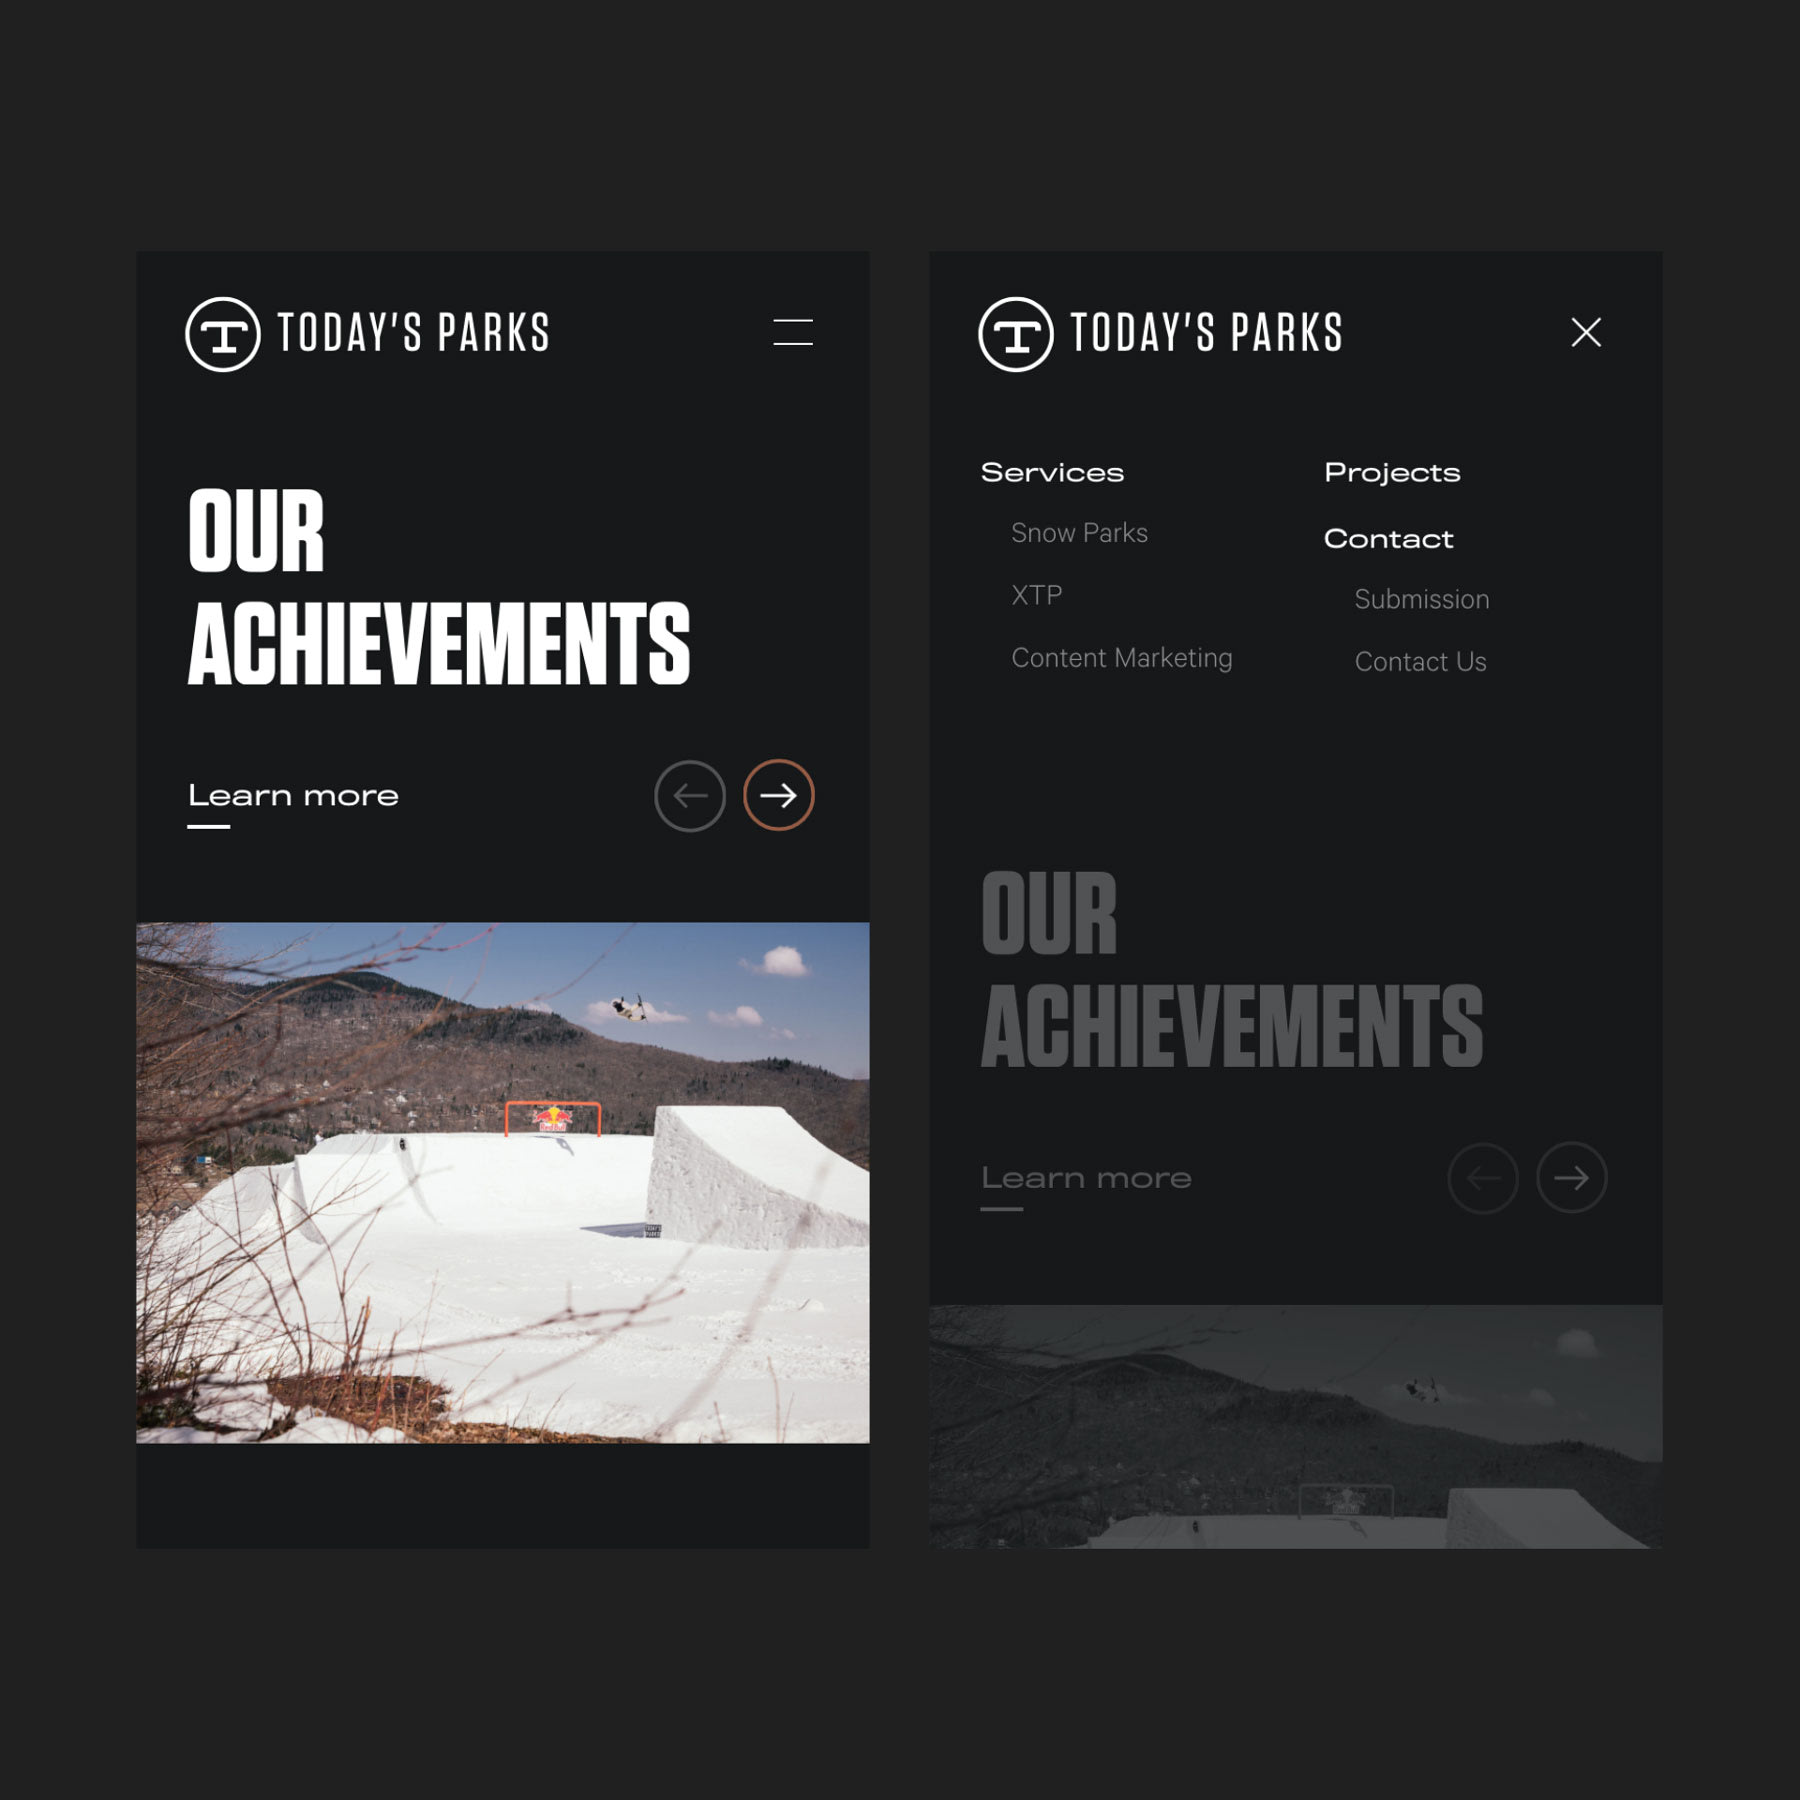 Mobile site UI / UX Today's Parks home page